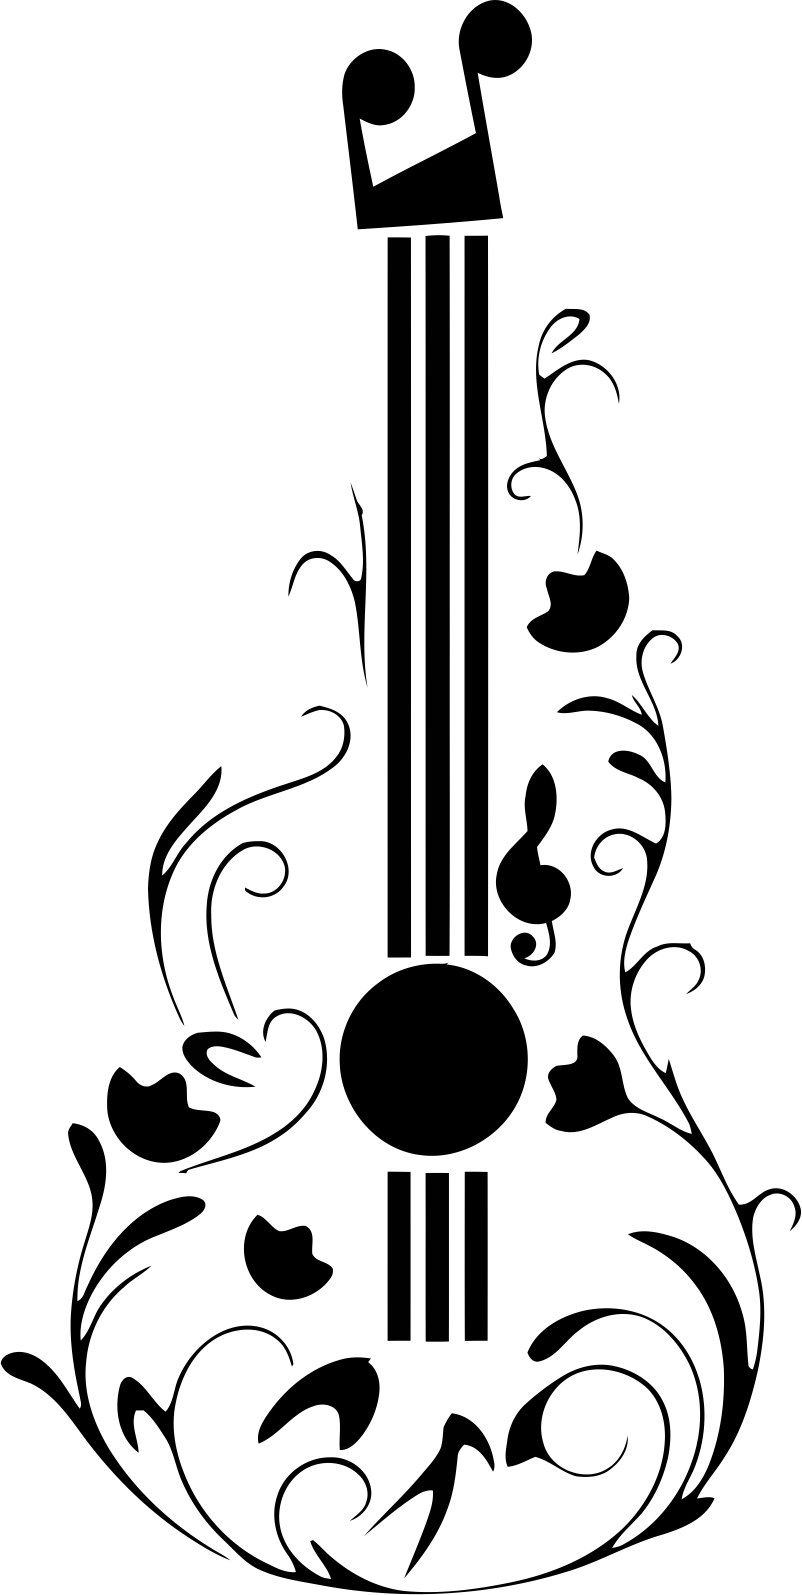 Guitar Tattoo Design Free Vector Cdr Download 3axis Co Guitar Tattoo Design Fancy Music Music Drawings